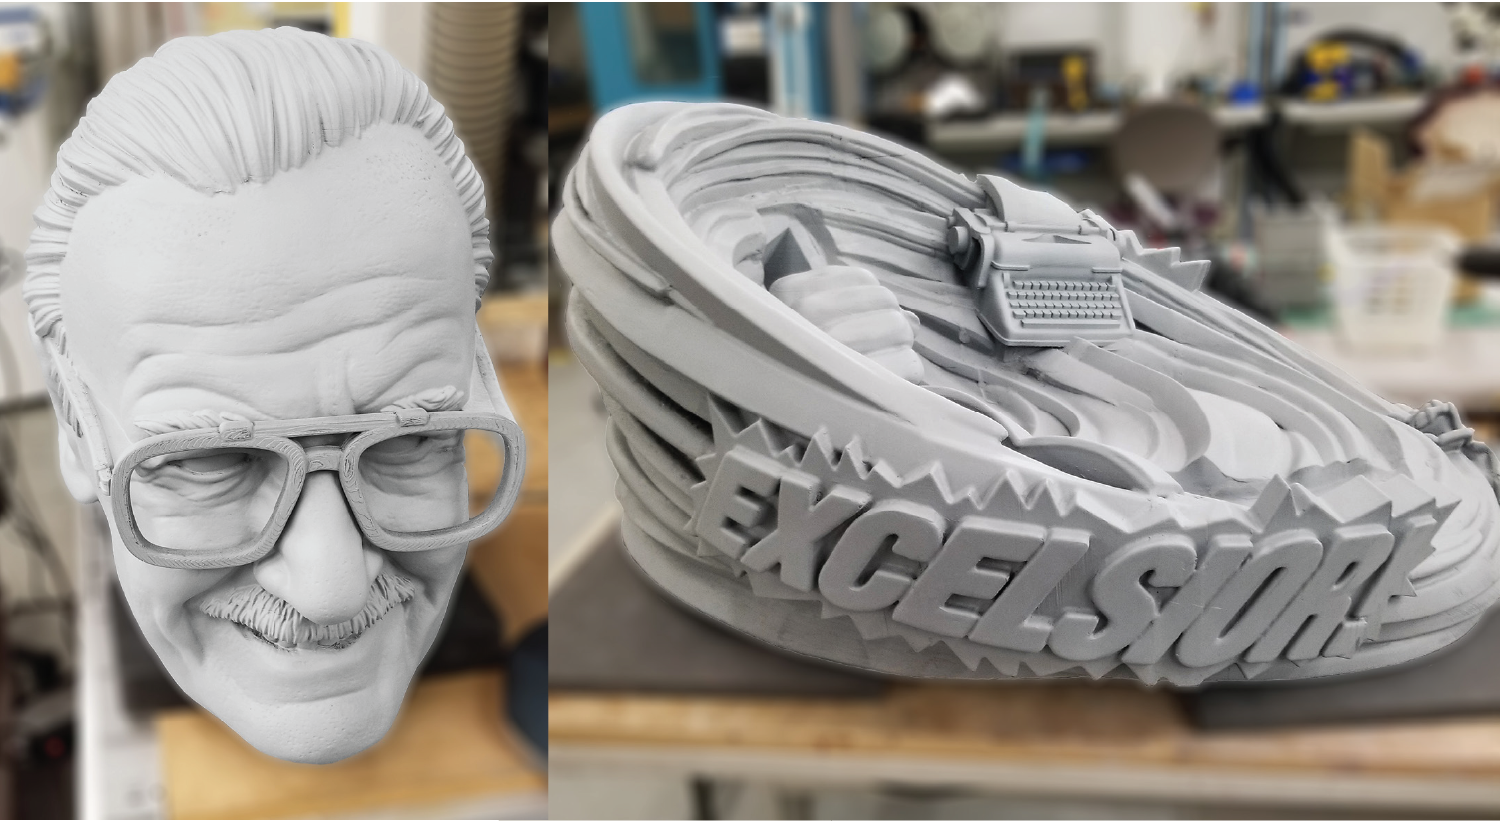 Stan Lee 3D printed base and head